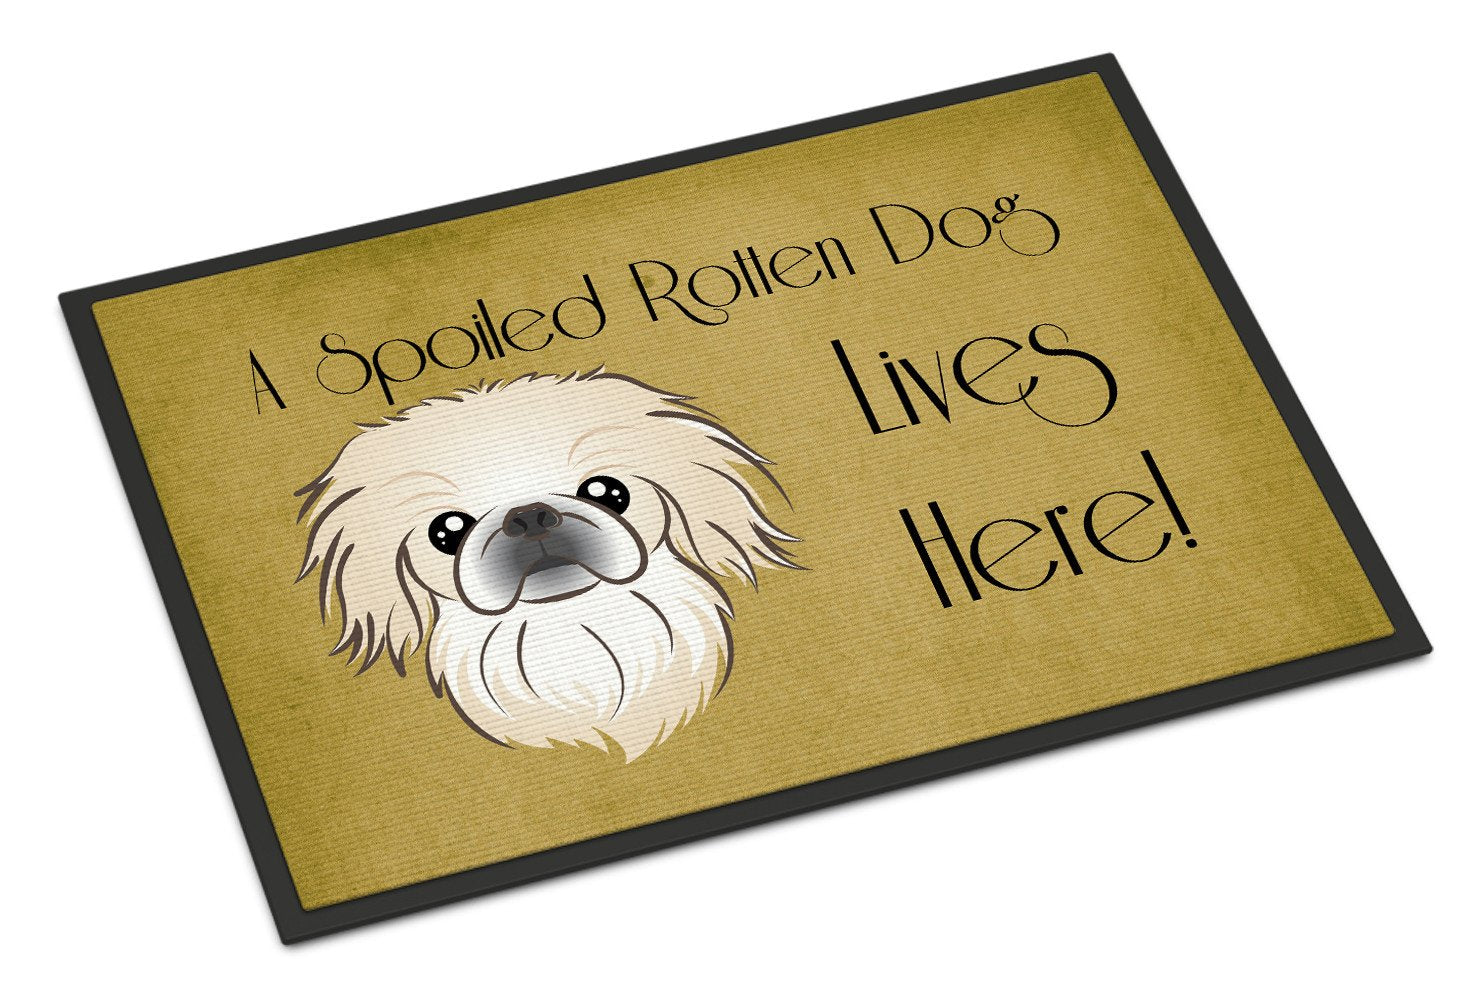 Pekingese Spoiled Dog Lives Here Indoor or Outdoor Mat 18x27 BB1469MAT - the-store.com